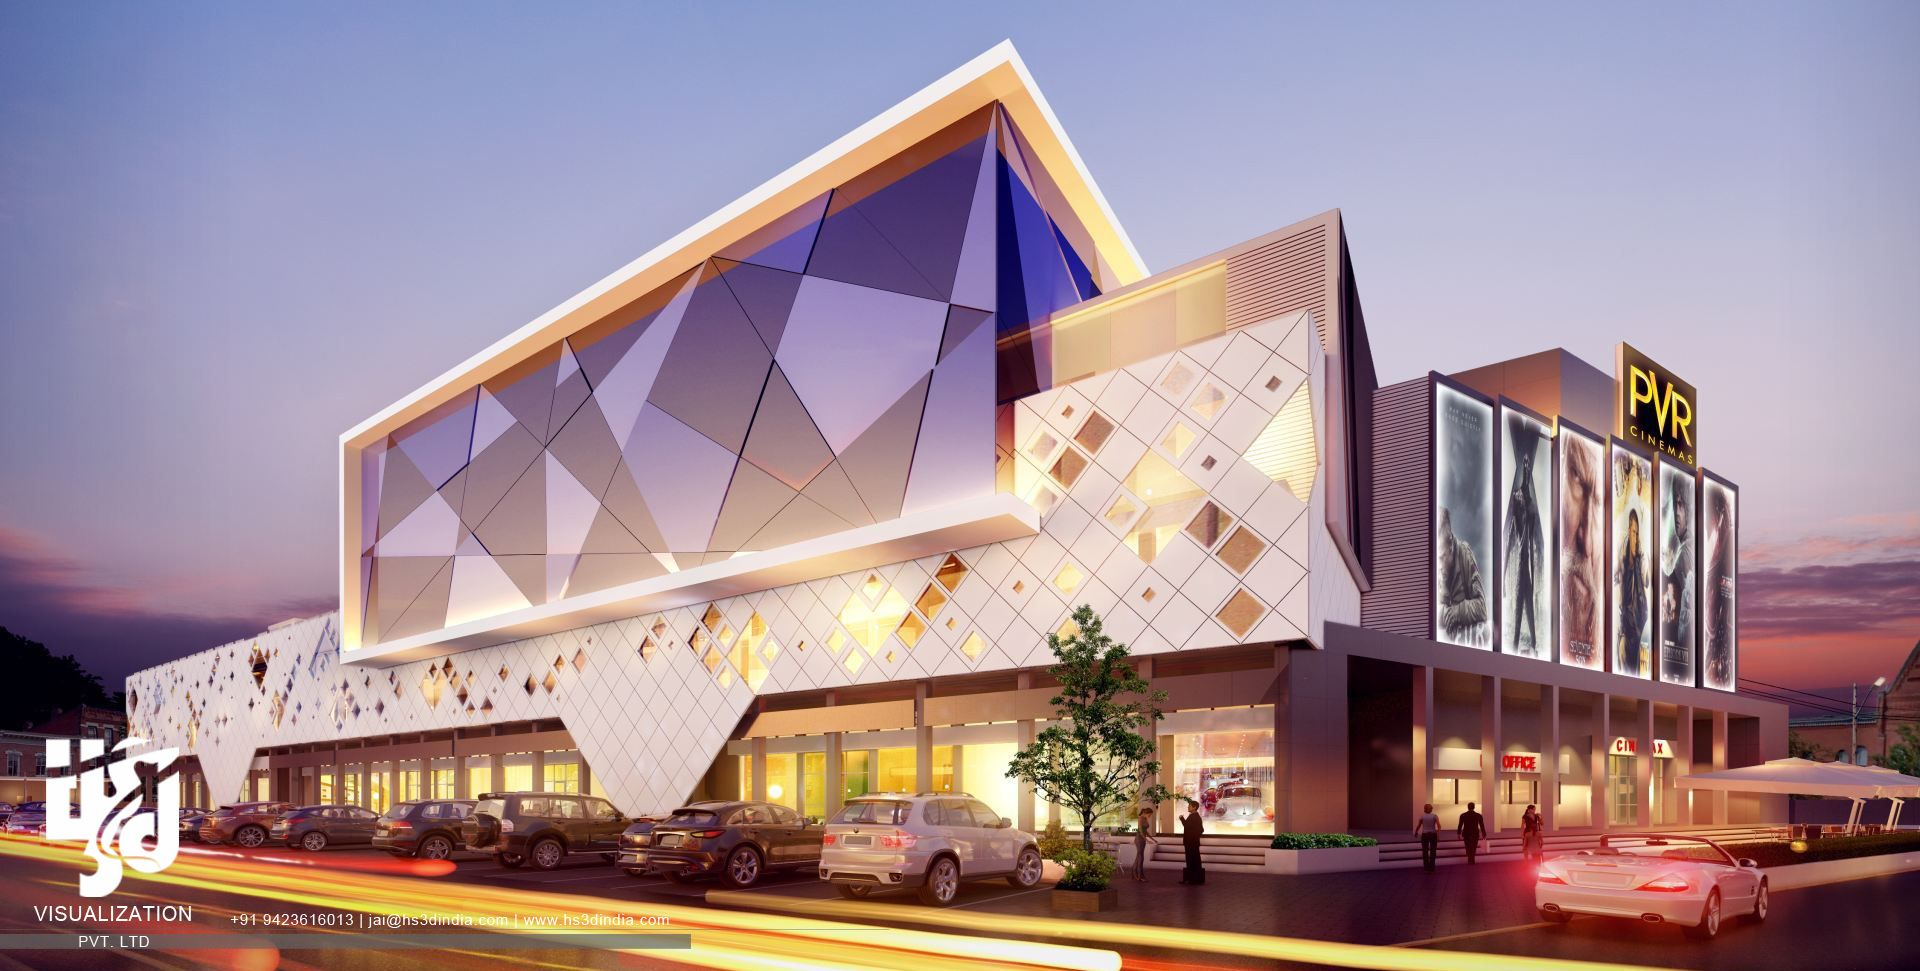 Shopping Mall Exterior Rendering Night View Facade Architecture Shopping Mall Architecture Architecture Exterior